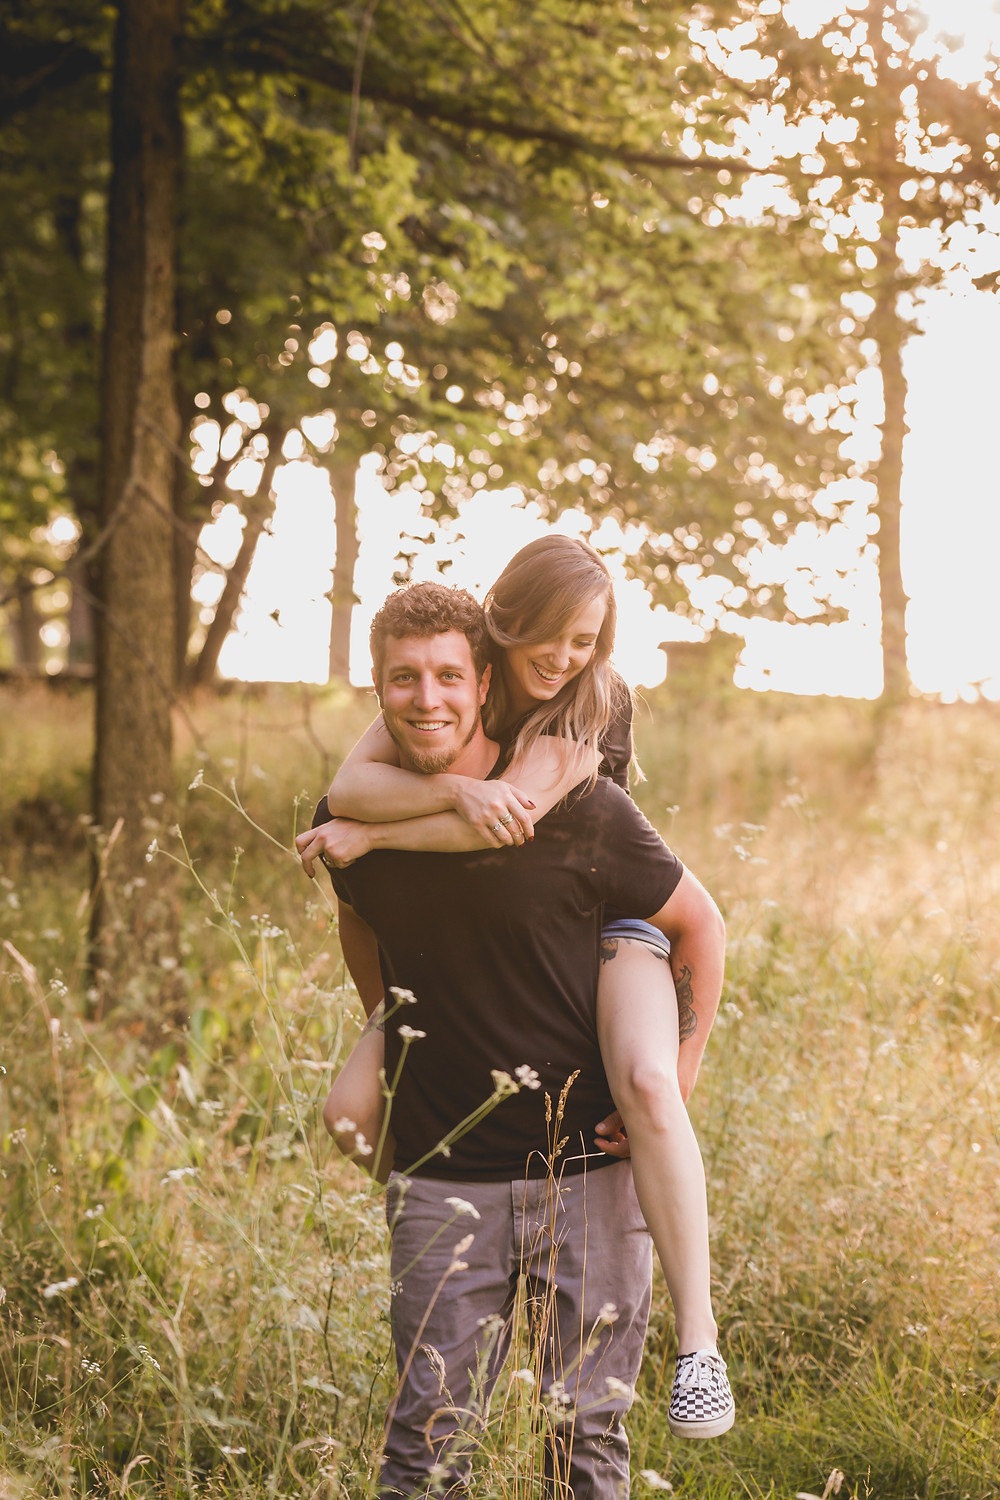 Fabyan Forest Preserve Geneva IL, Golden hour, fun and candid engagement session, Illinois photographer, Composed and Exposed Photography